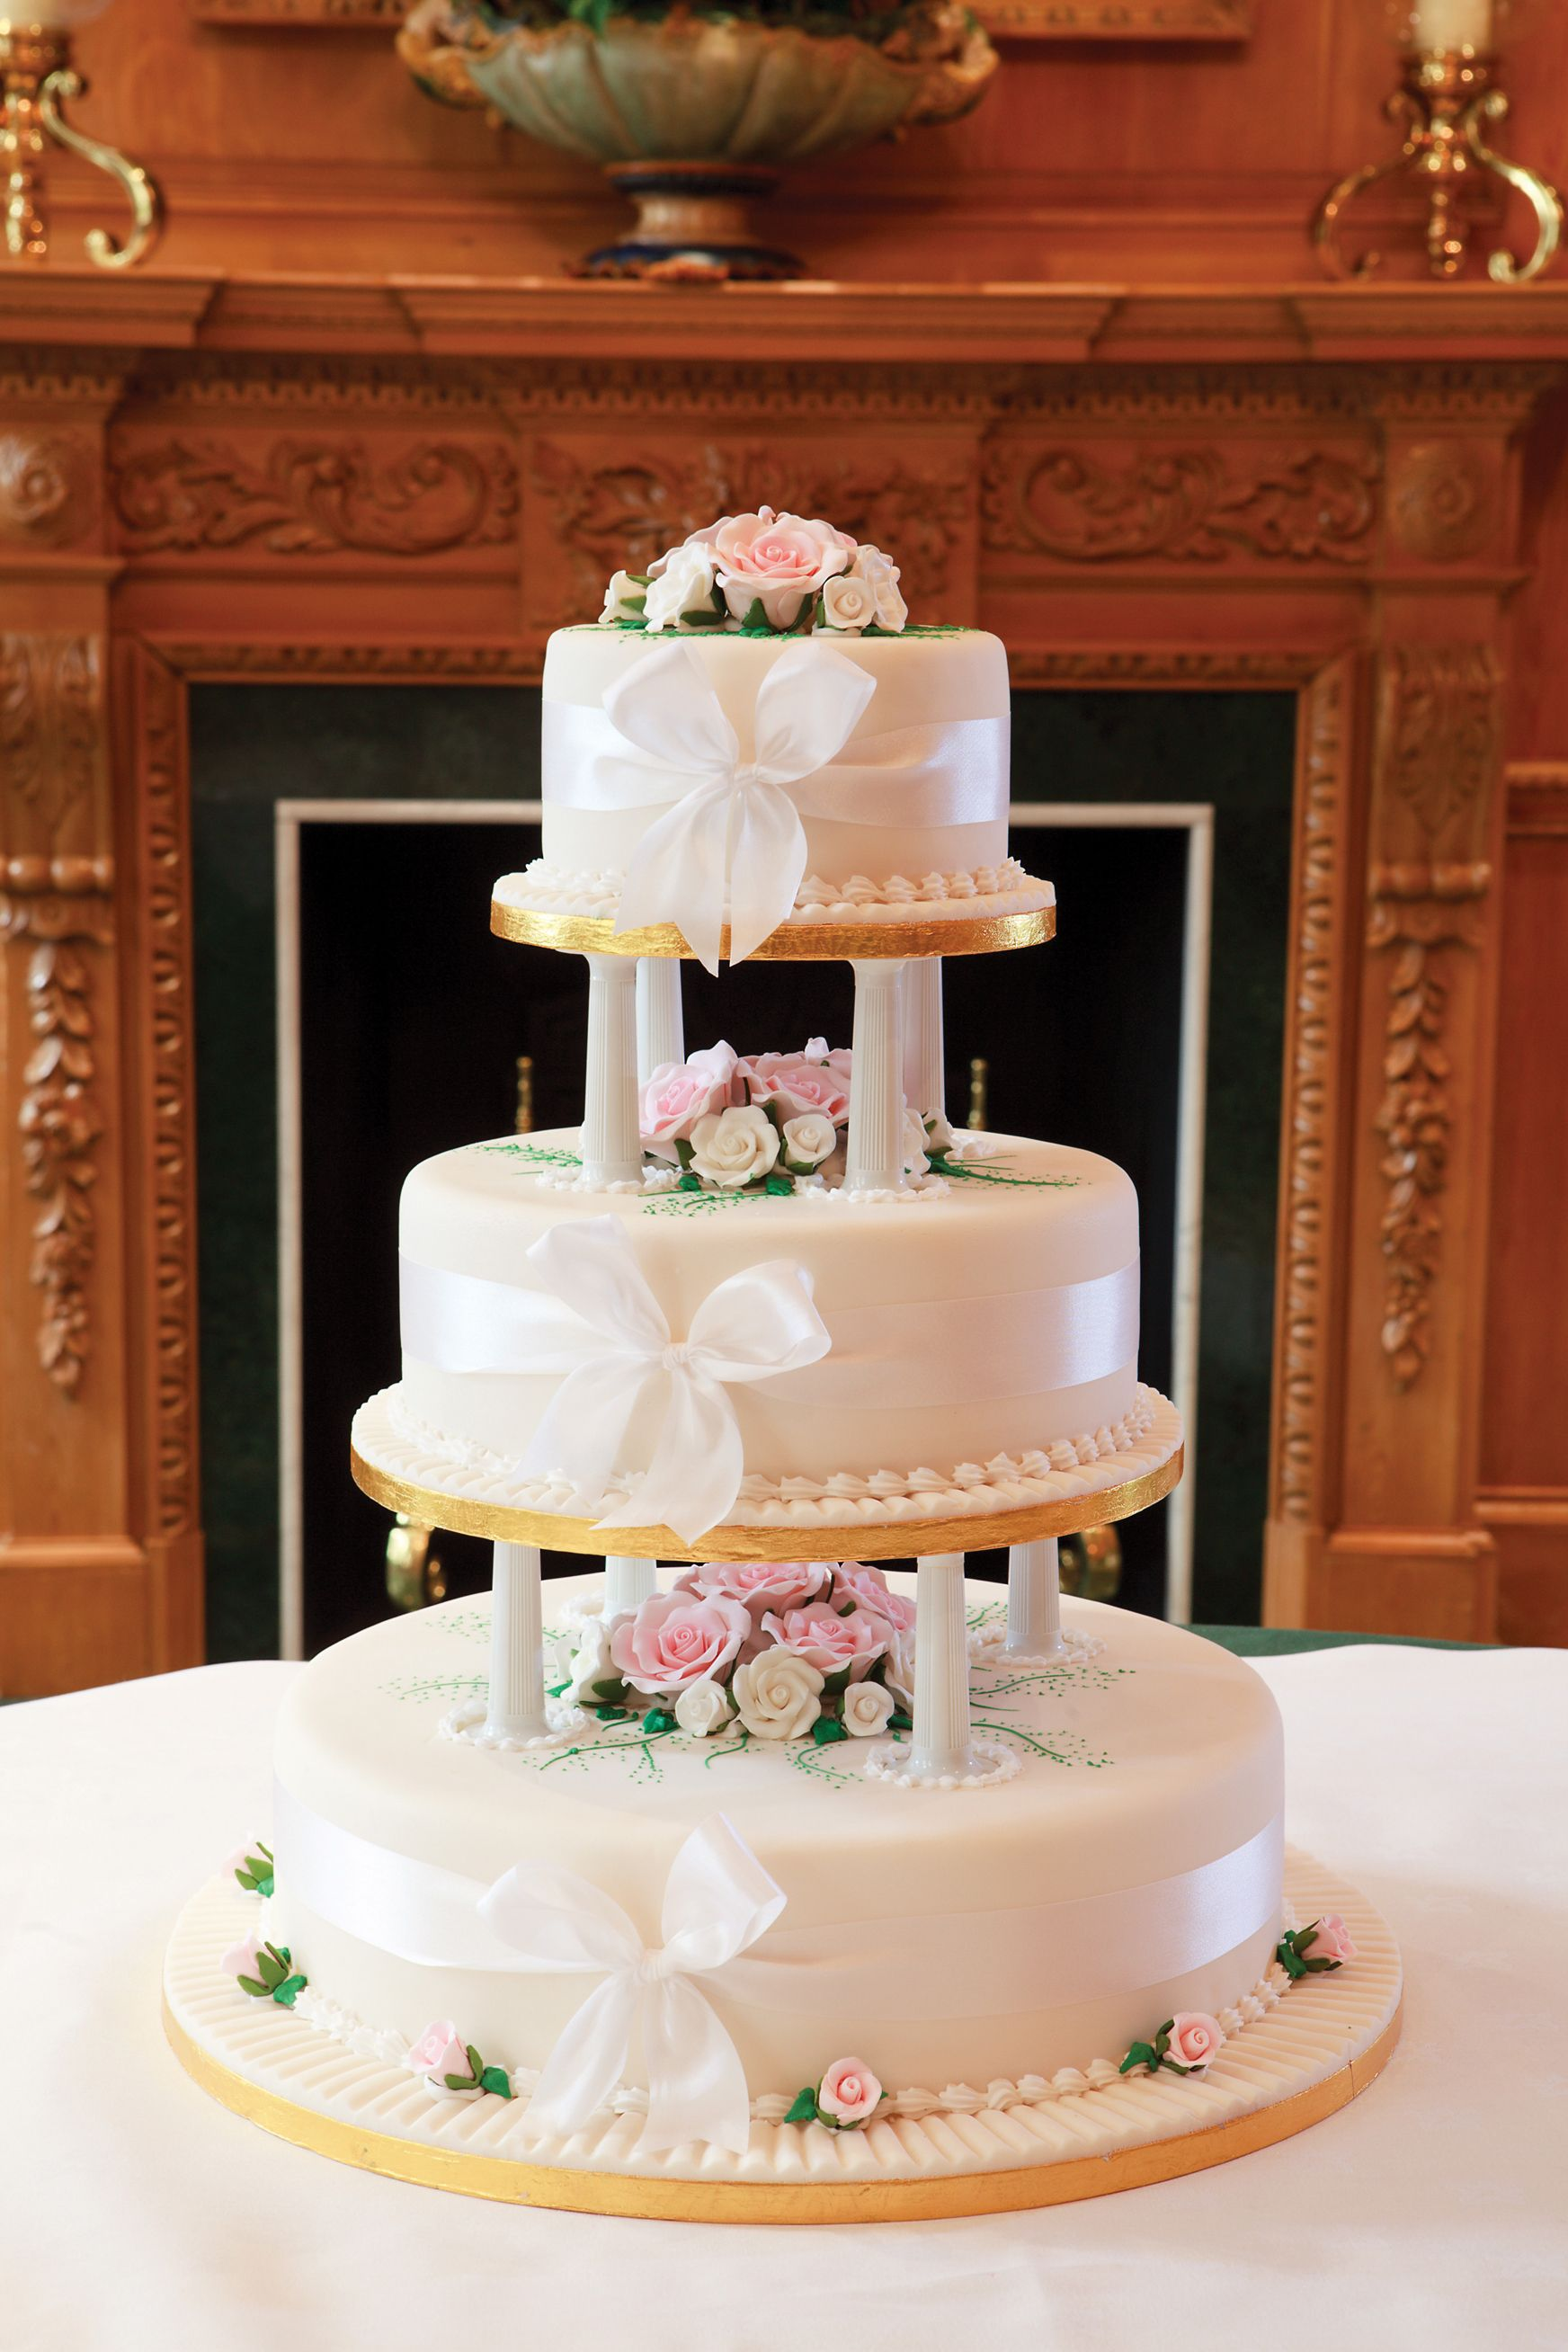 Traditional Looking Wedding Cake But Created With Patisserie Valerie Famous Gateau Sponges And Fillings Order